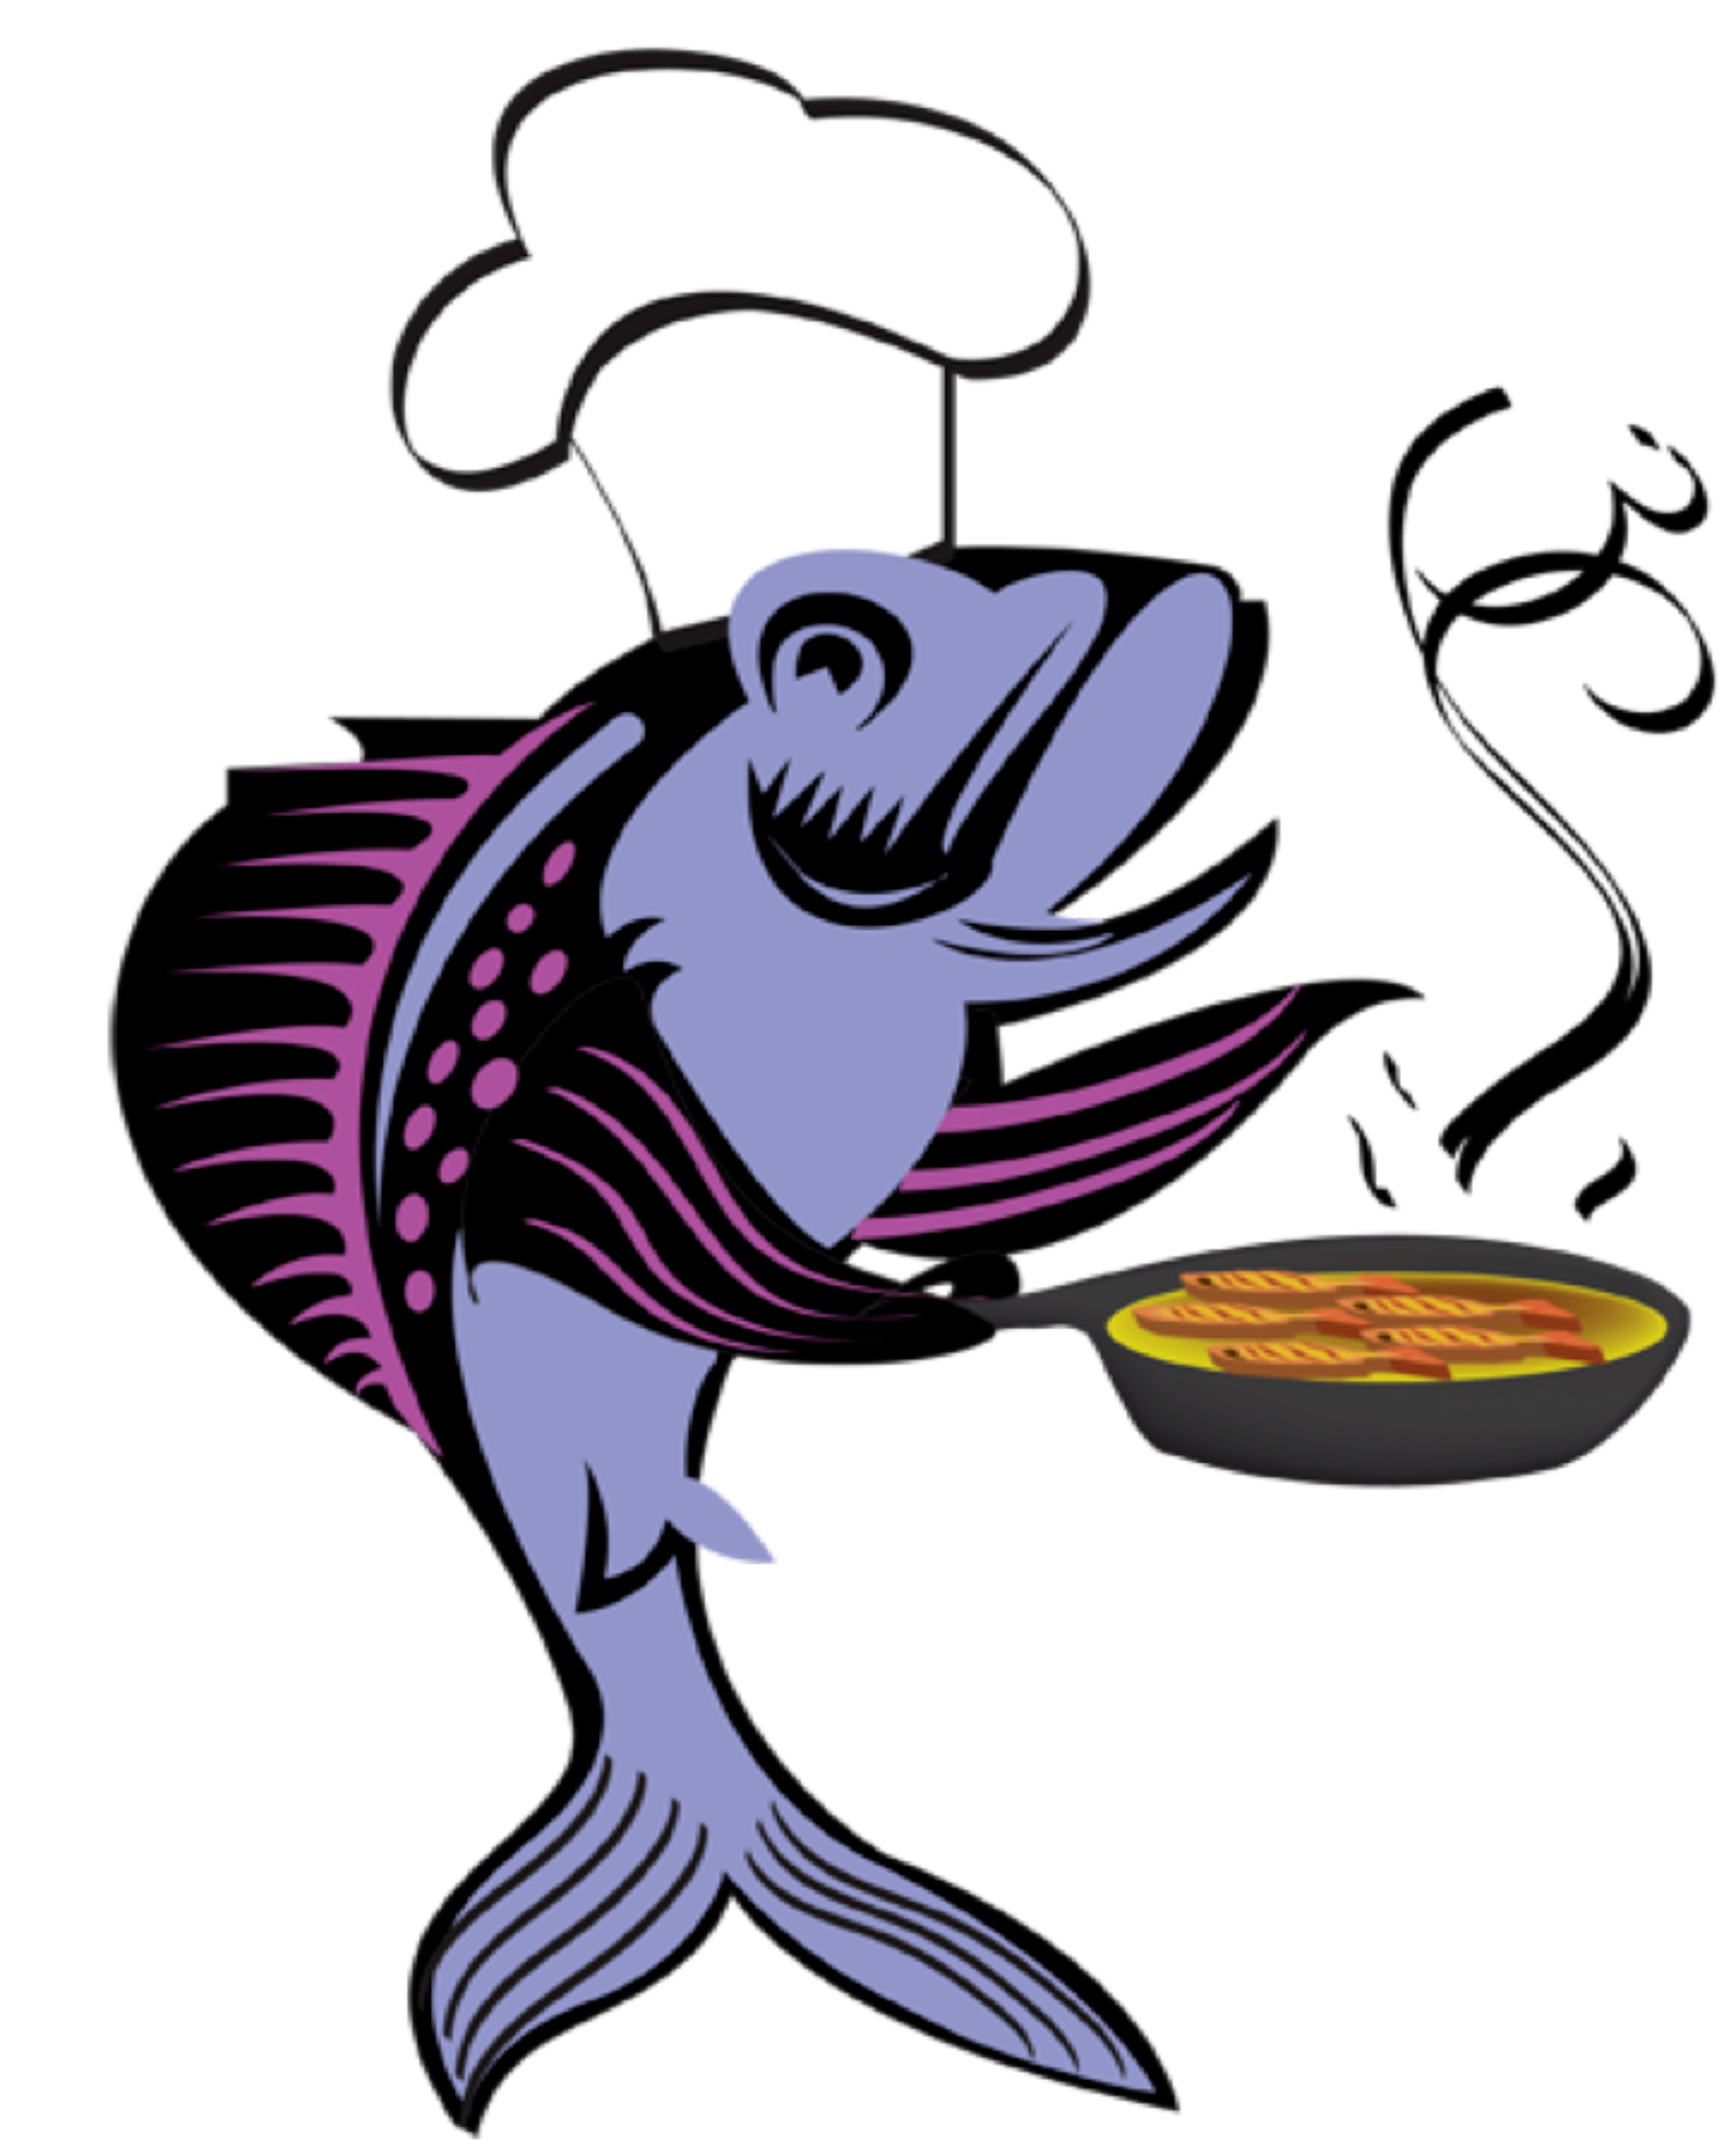 Fish Fry Clipart Images - ClipArt Best